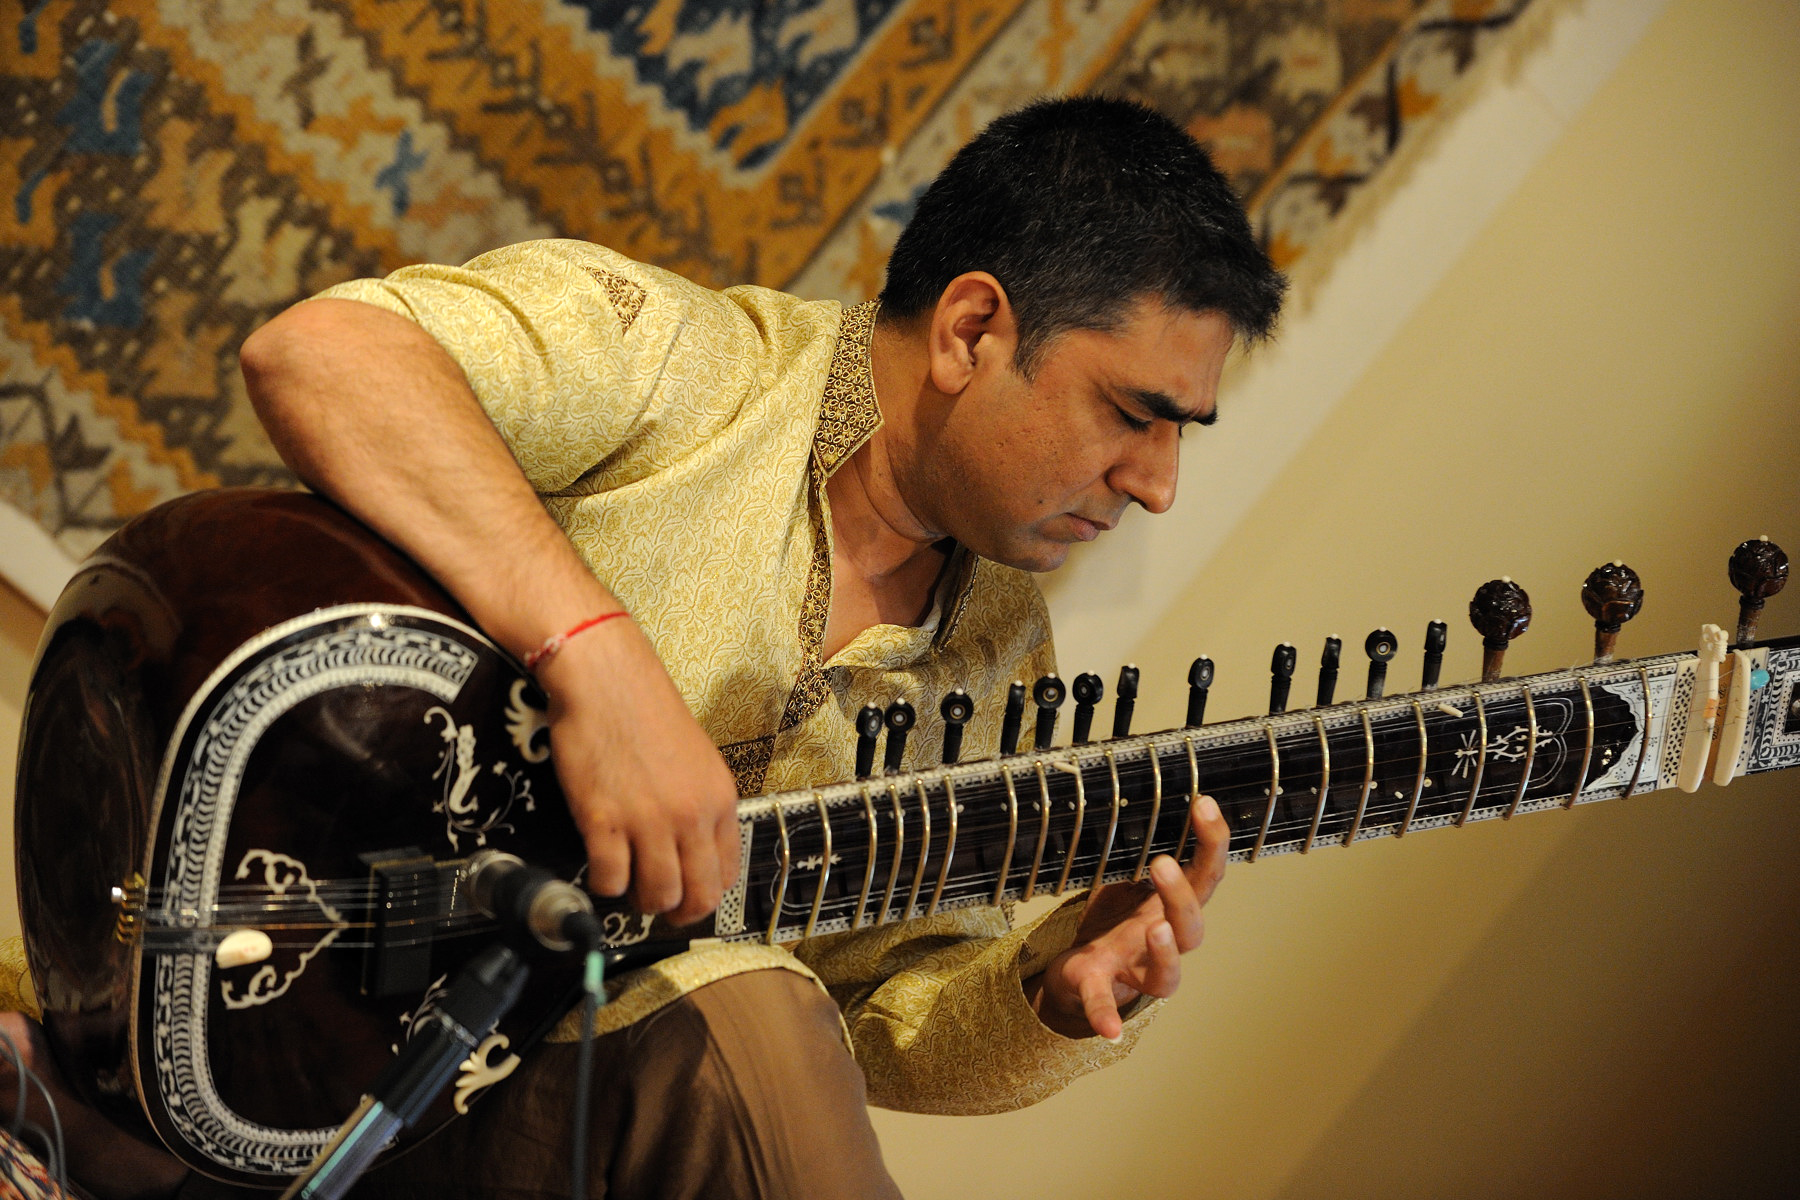 During Their Excellencies visit to the Canadian Club of Vancouver, guests were treated to a musical performance by Mohamed Assanni, sitar player.